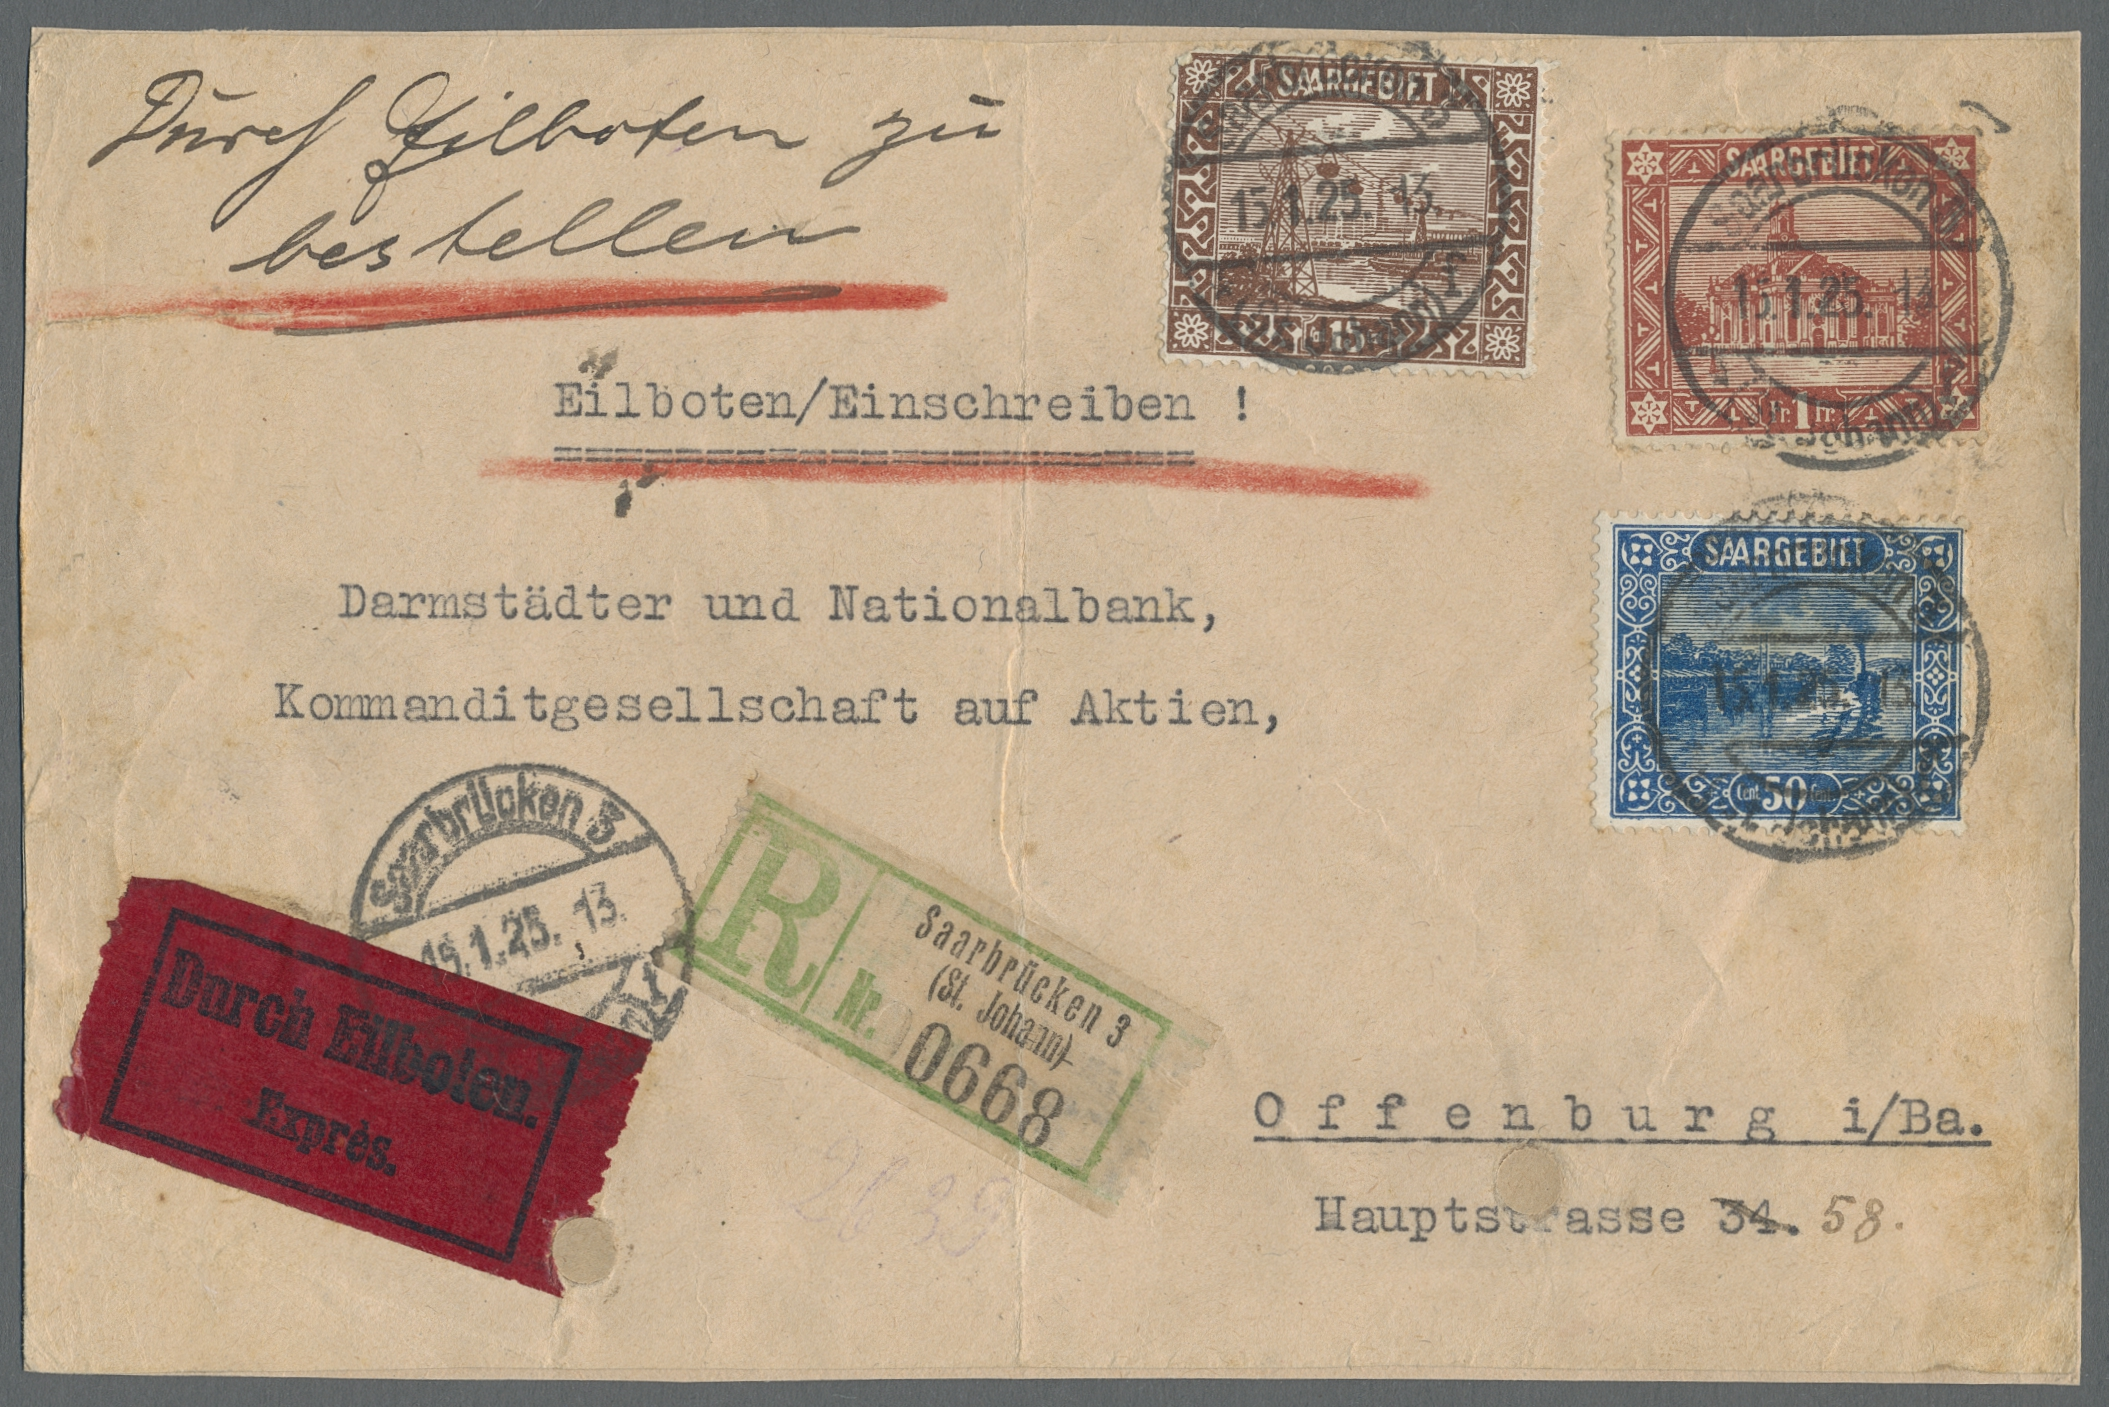 Lot 28869 - Deutsche Abstimmungsgebiete: Saargebiet  -  Auktionshaus Christoph Gärtner GmbH & Co. KG Sale #46 Gollcetions Germany - including the suplement